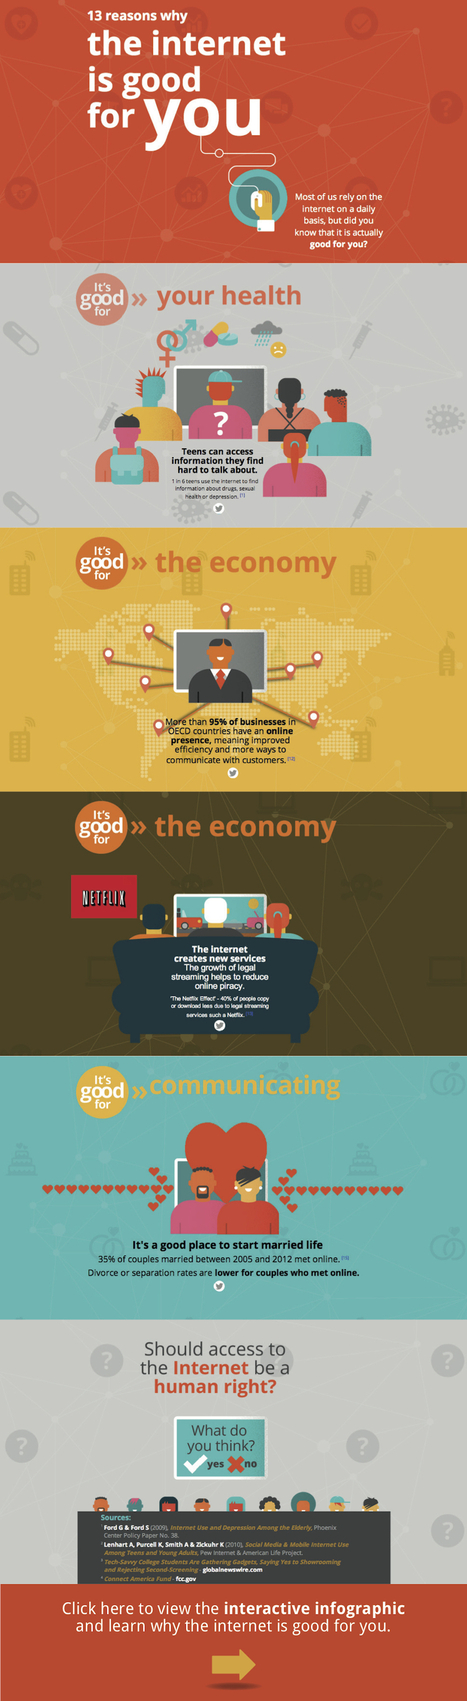 13 Reasons to Love the Internet [Infographic] via @steprincipato | Ice Cool Infographics | Scoop.it